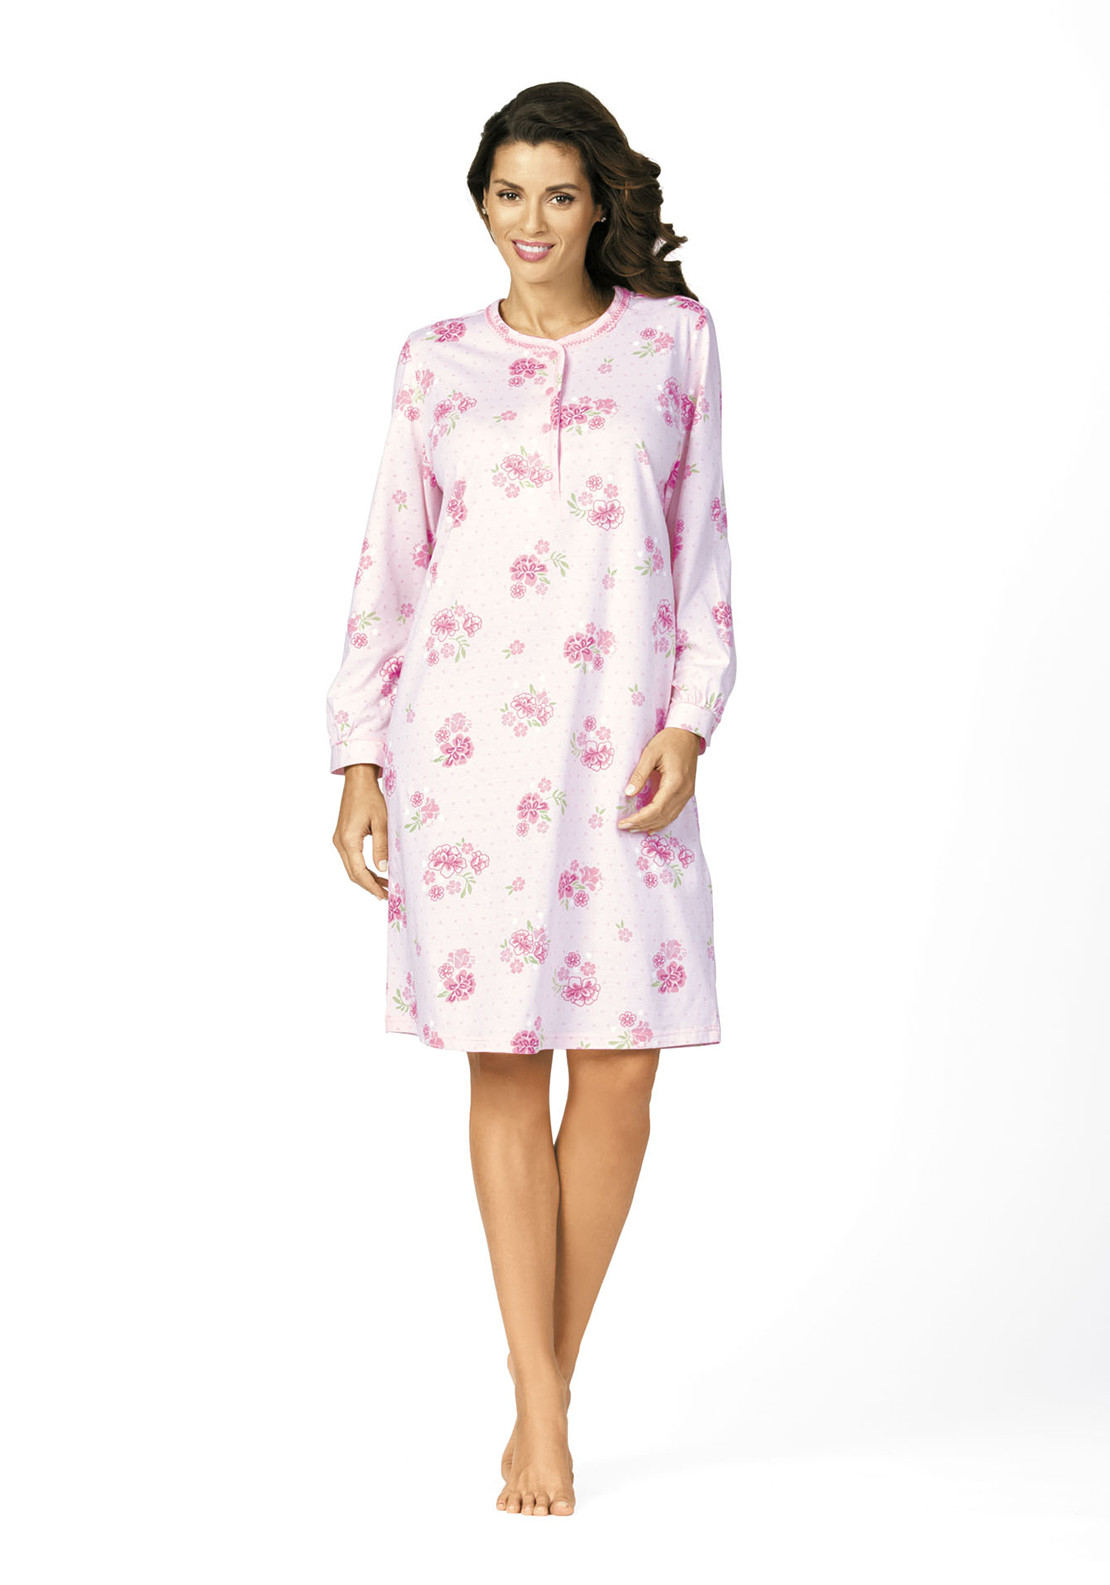 Comtessa Floral Print Cotton Nightdress, Pink